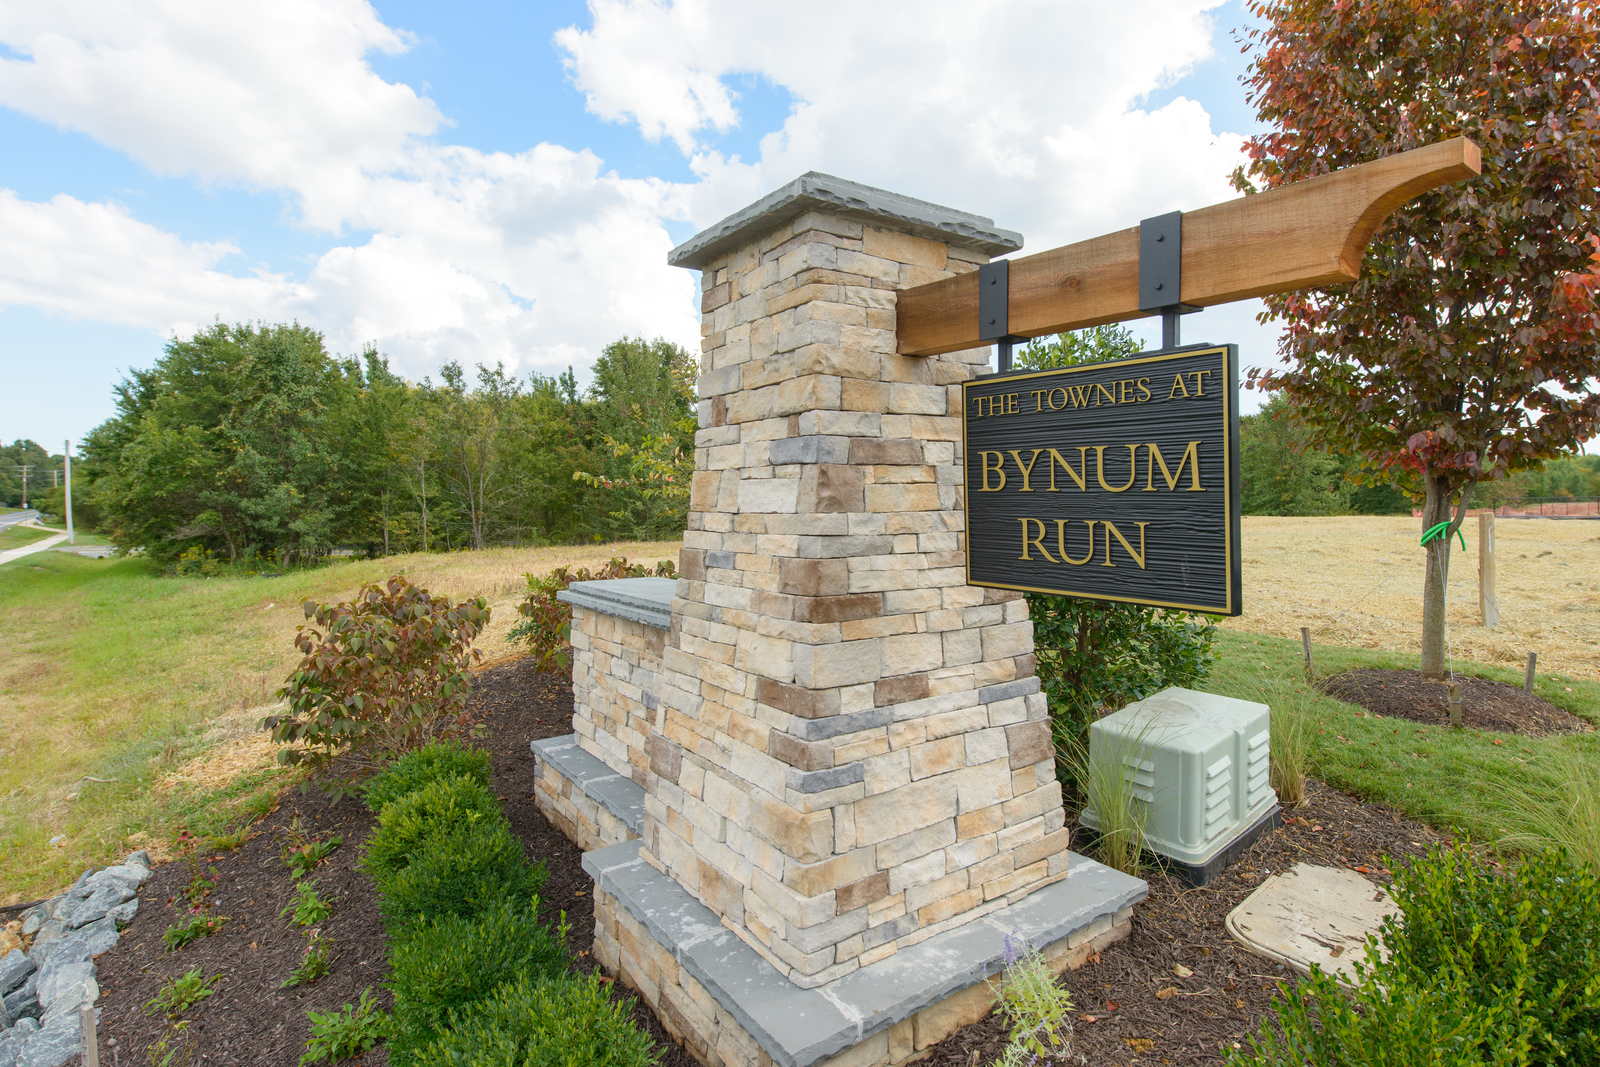 New Homes For Sale At Townes At Bynum Run In Bel Air Md